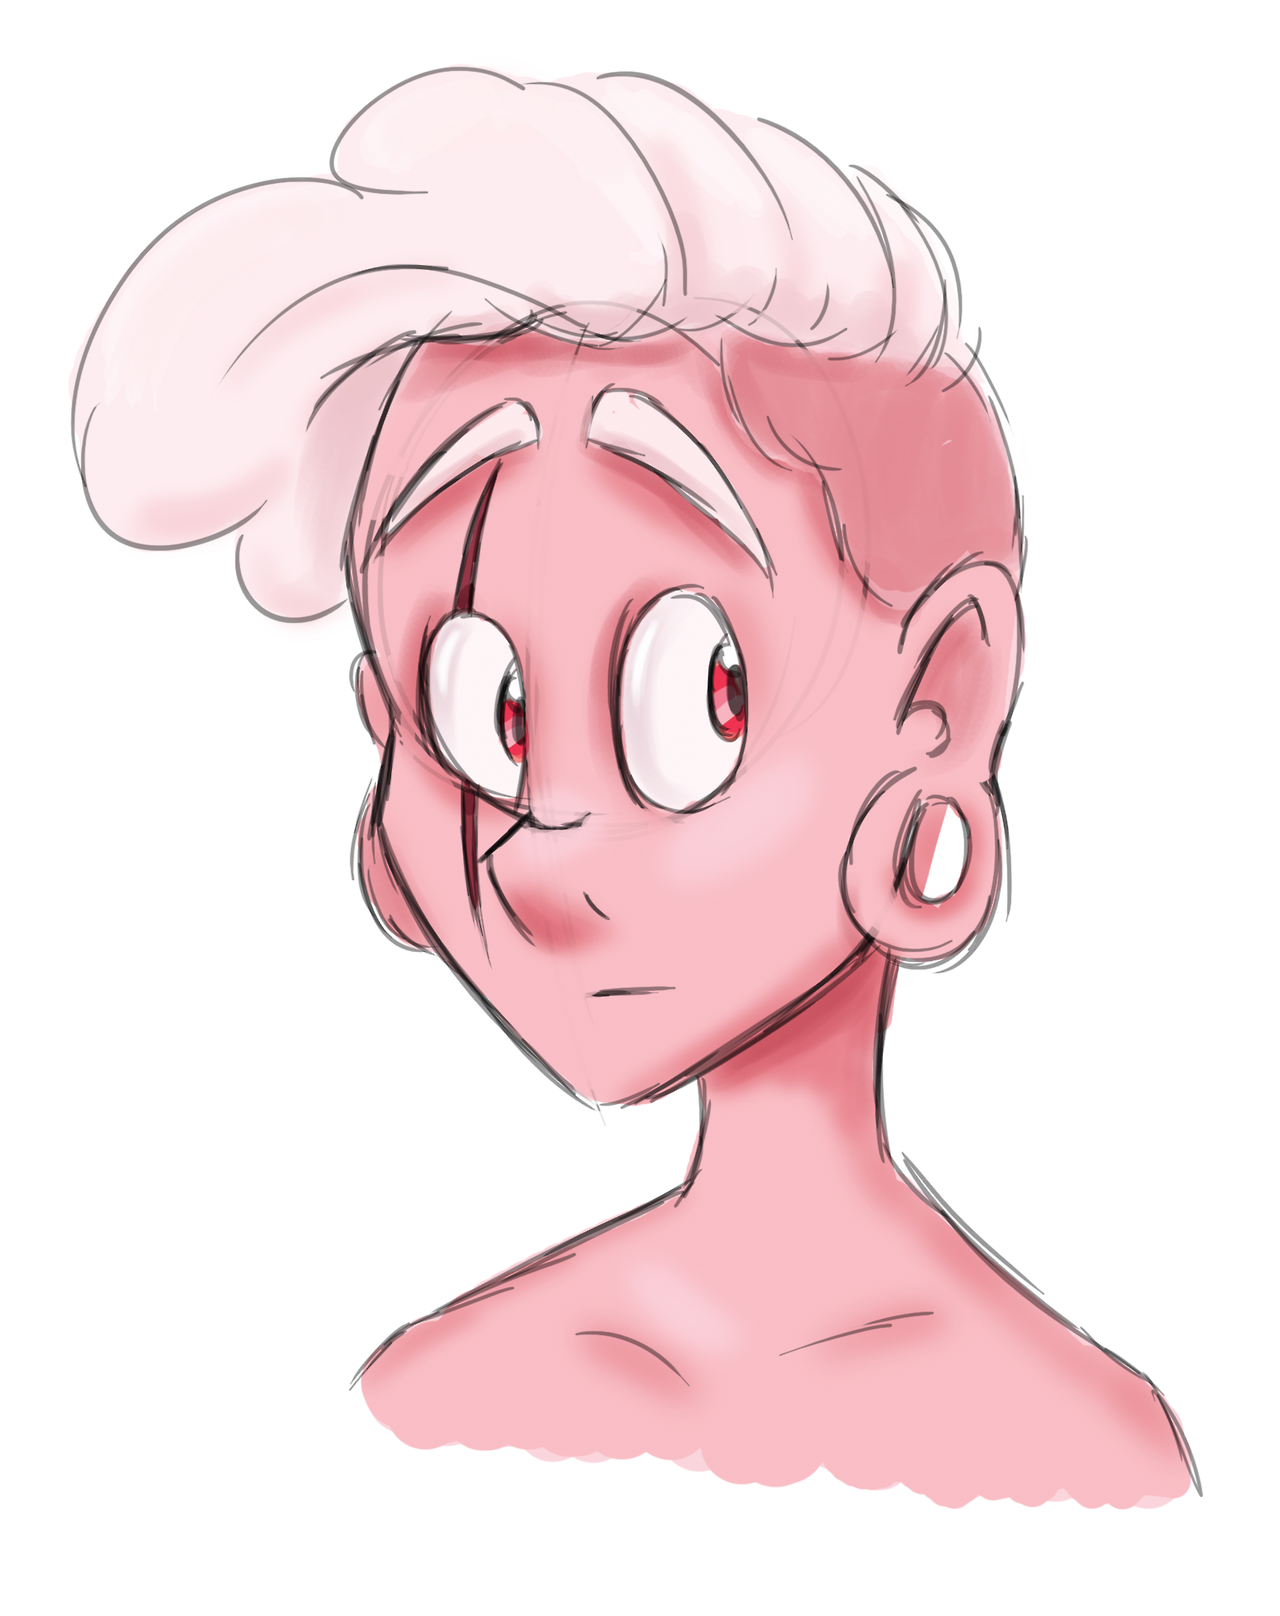 I LOVE MY NEW PINK SON! I have always loved Lars and I'm so happy he grew up just like I knew he would! still it broke my heart to see him literally DIE in front of me with my own two eyes!